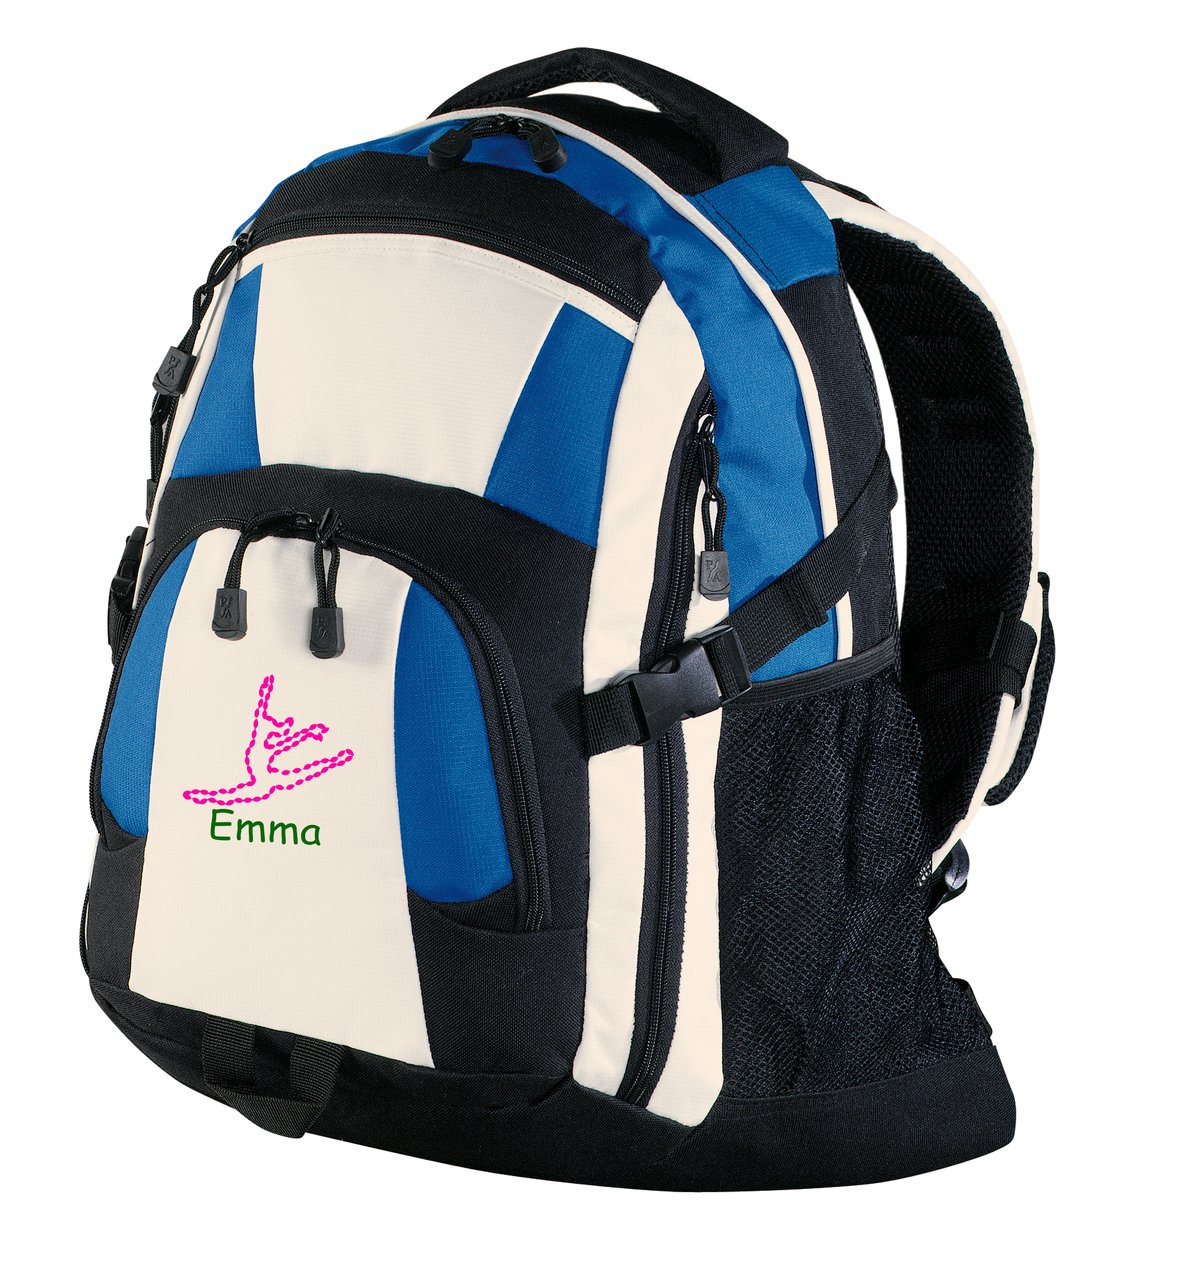 all about me company Personalized Dance Urban Backpack (Royal/Black/Ston) by all about me company